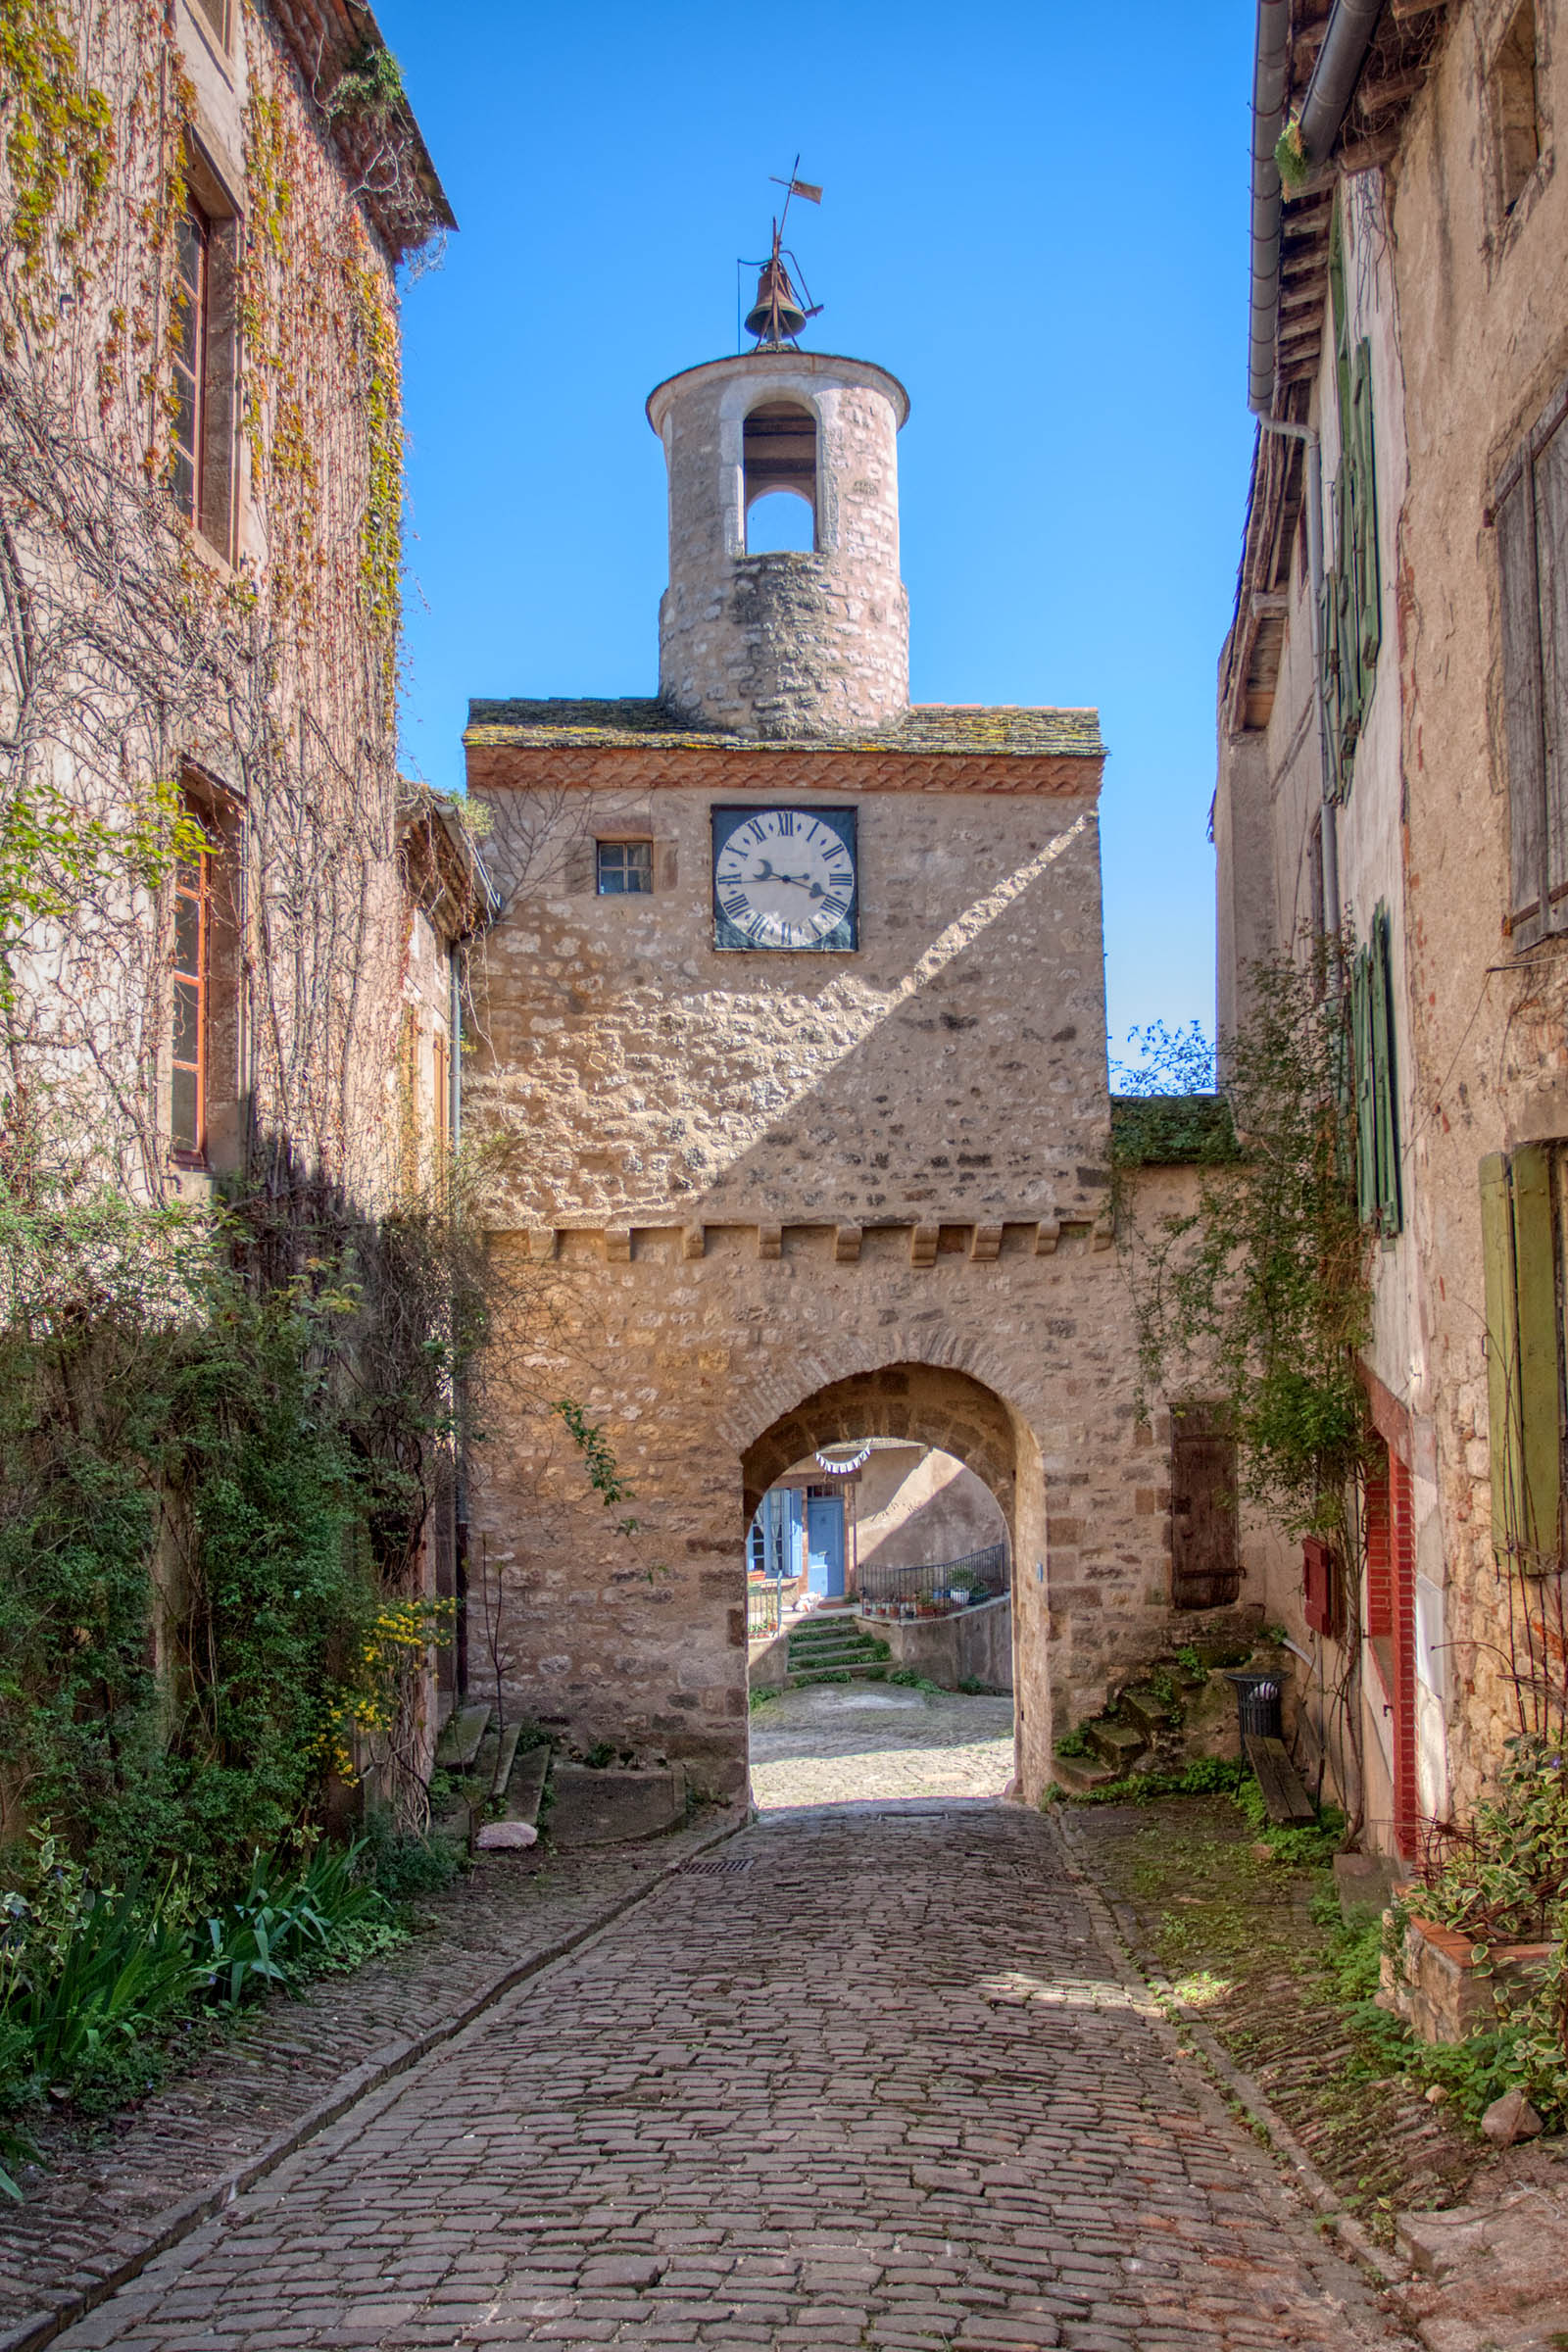 One of many gateways to Cordes-sur-Ciel